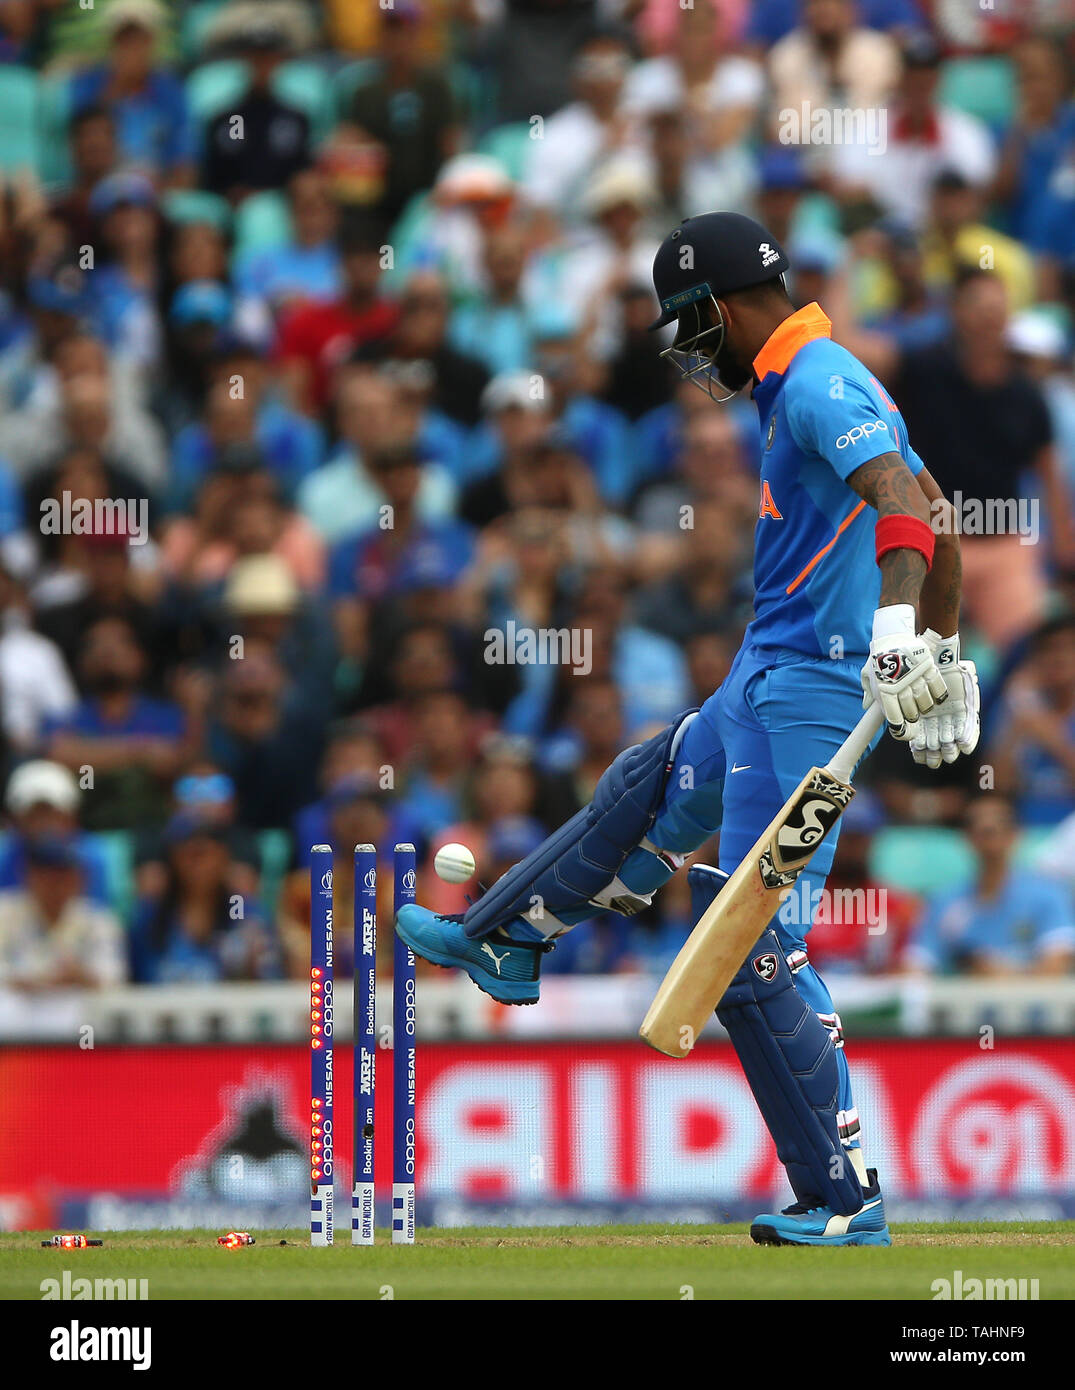 India's KL Rahul is bowled by New Zealand's Trent Boult during the ICC Cricket World Cup Warm up match at The Oval, London. - Stock Image